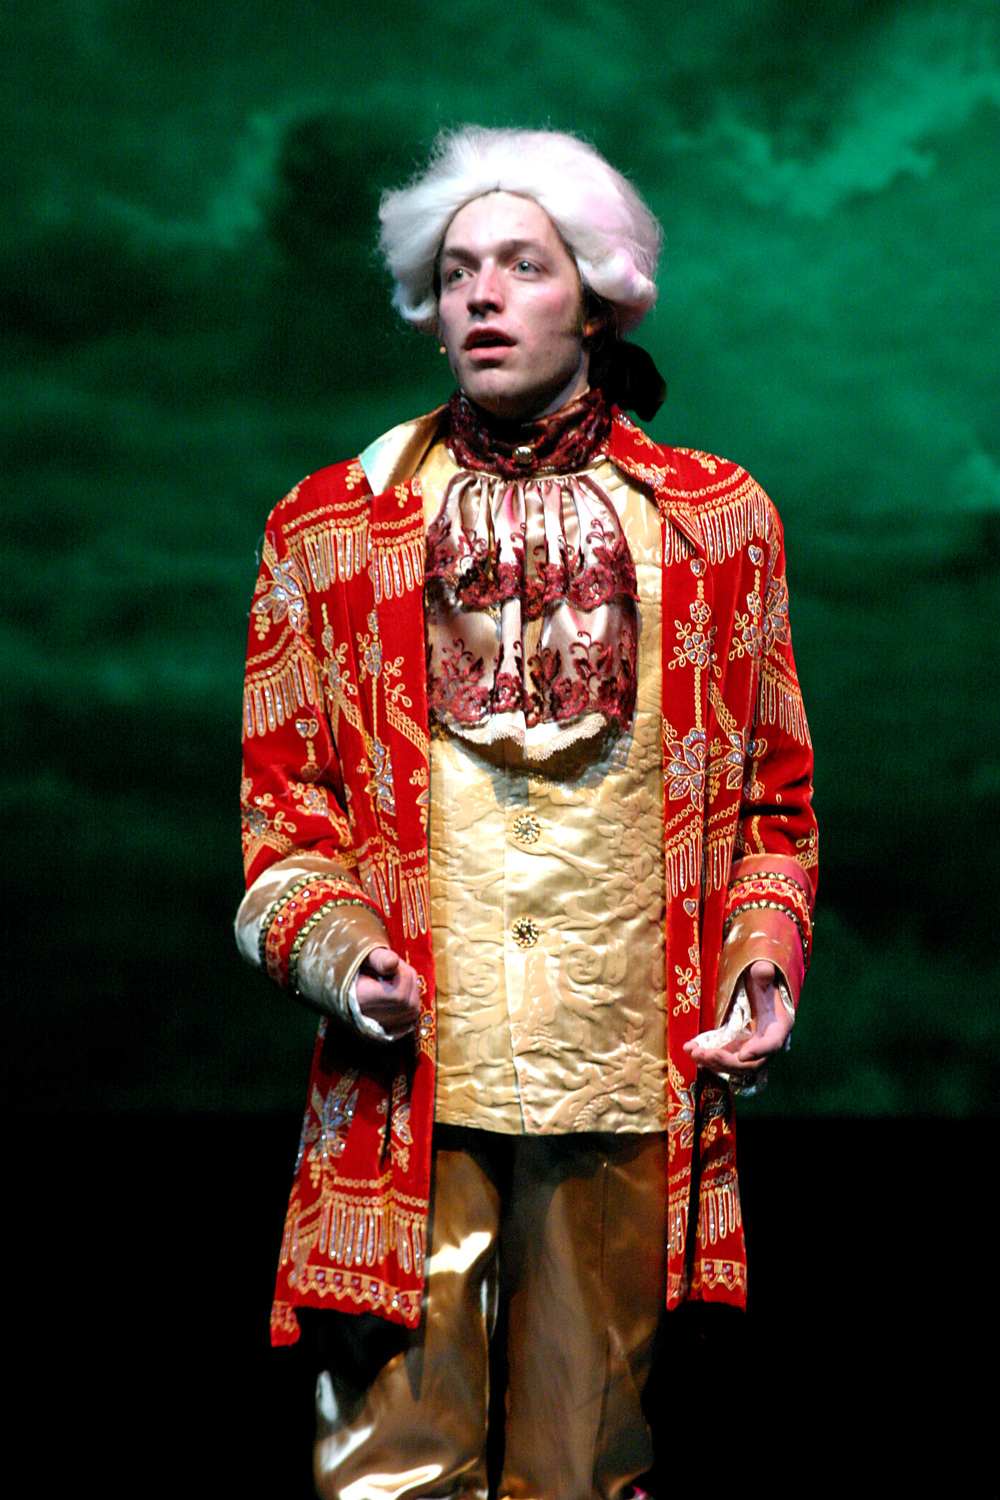 093 - The Scarlet Pimpernel 2005 - Generale.jpg